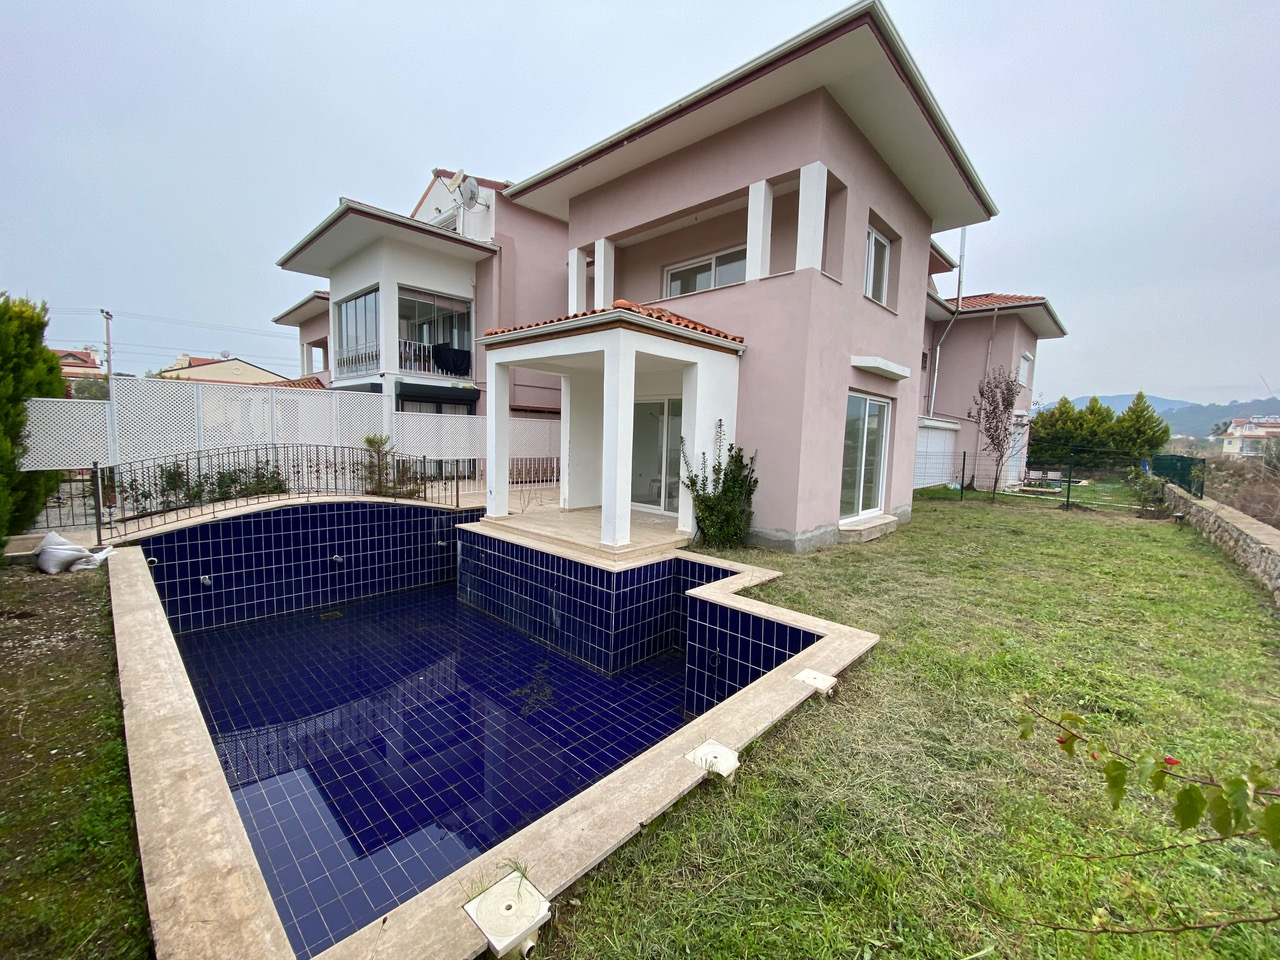 3 Bedroom Villa  with Private Pools and Gardens For Sale